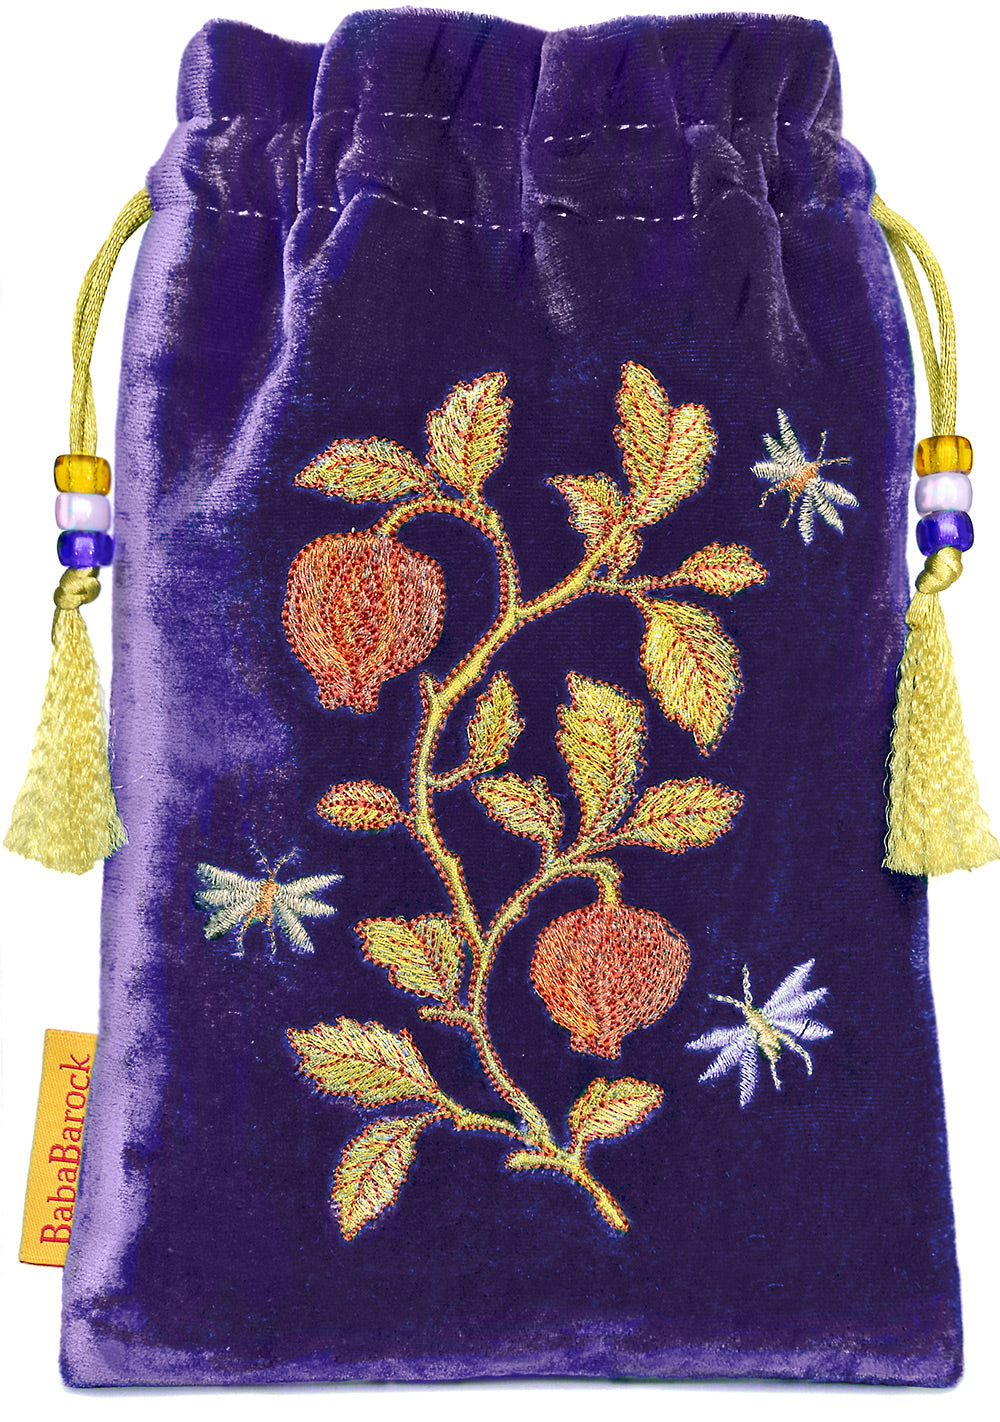 embroidered tarot bag, embroidered tarot pouch, metallic embroidery, silk tarot bag, tarot pouch, purple, silk velvet, embroidered pouch, embroidered drawstring, insect embroidery design